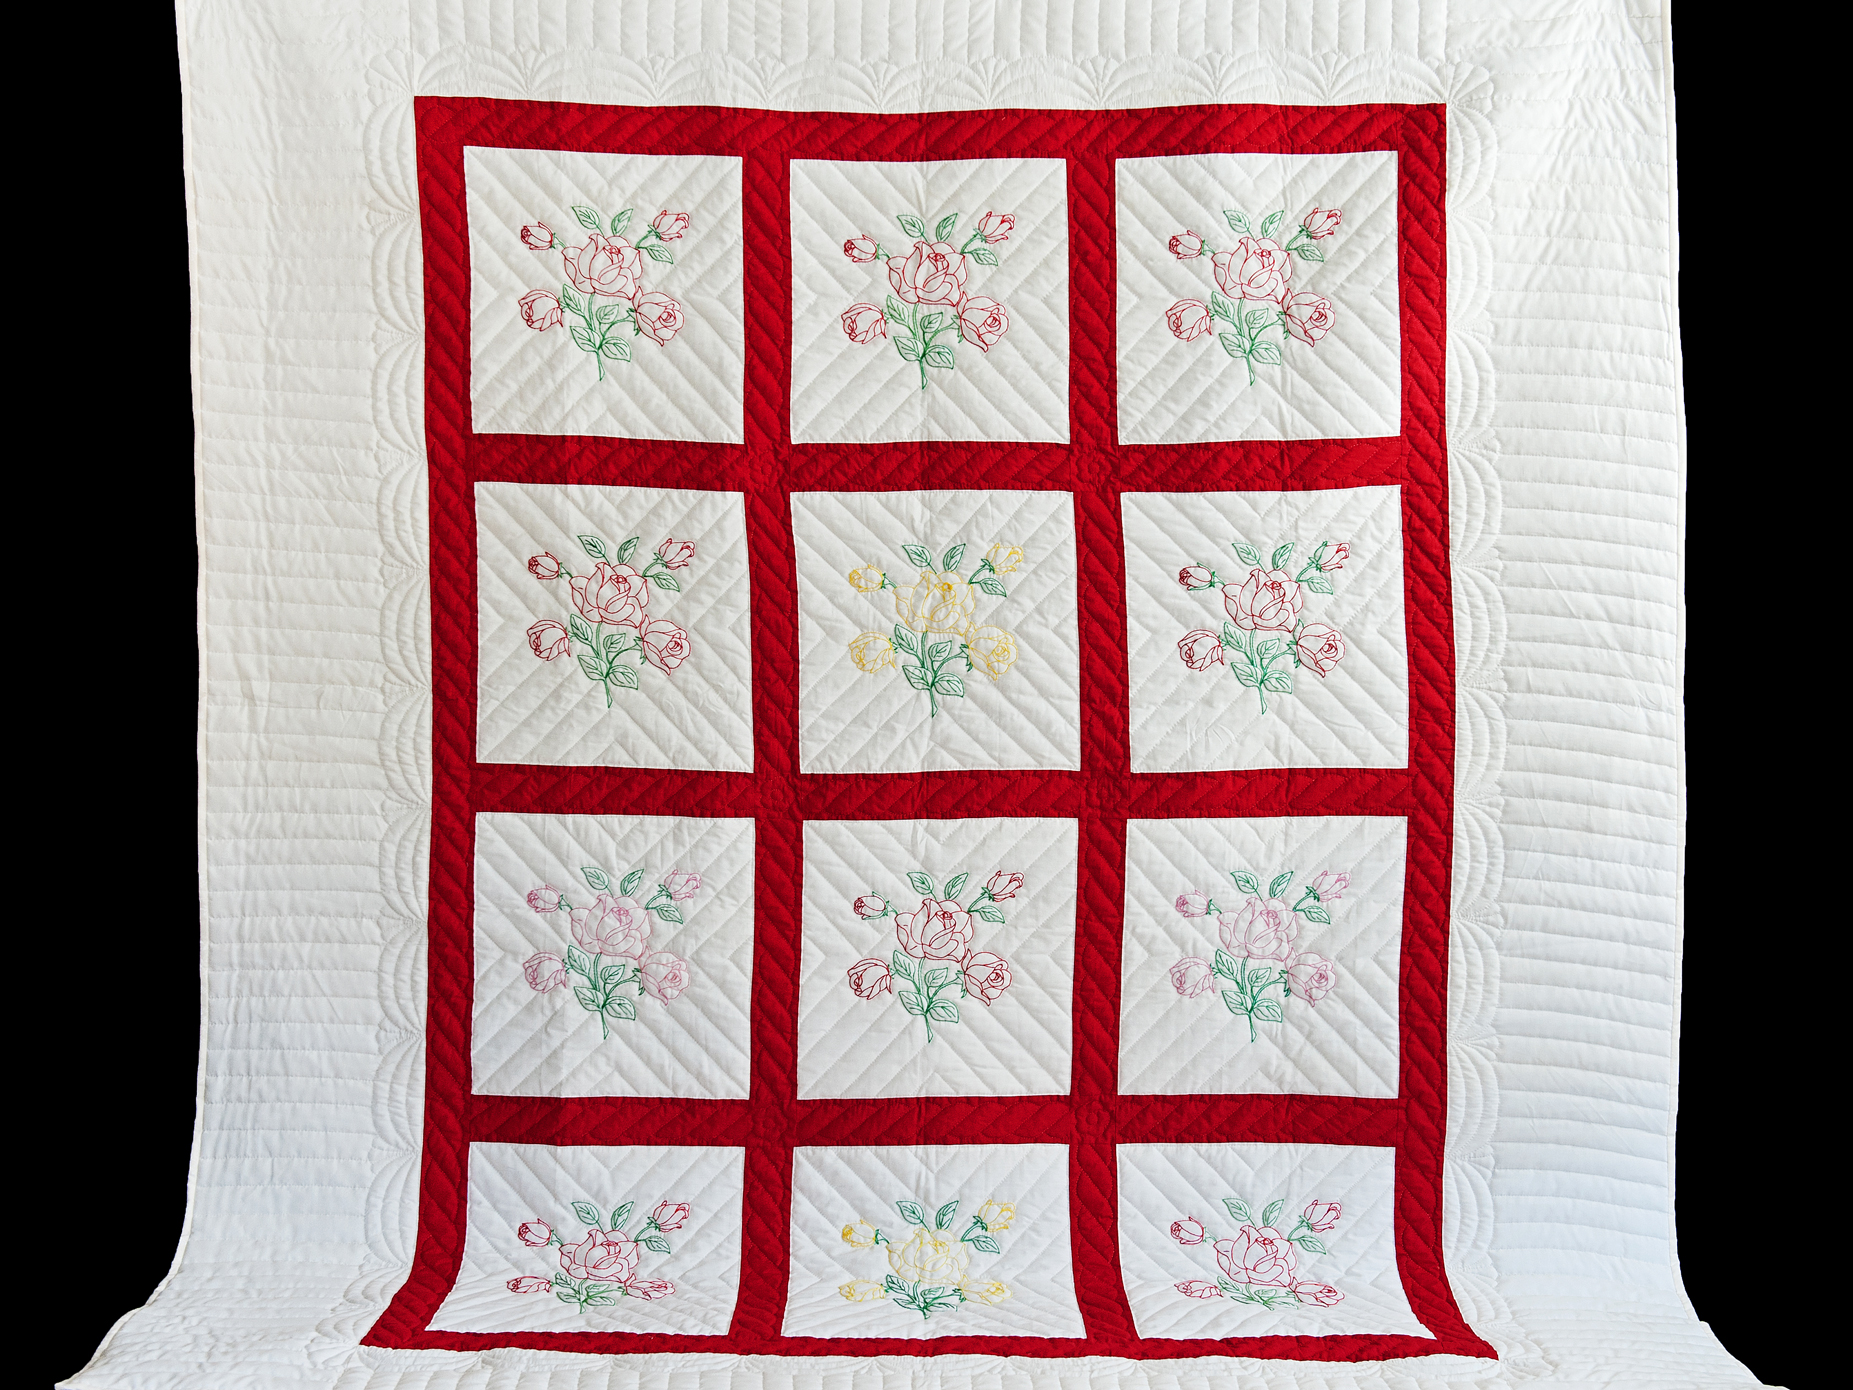 Set of 4 Embroidered Quilt Blocks Roses in Red and Pinks 8.5 inches